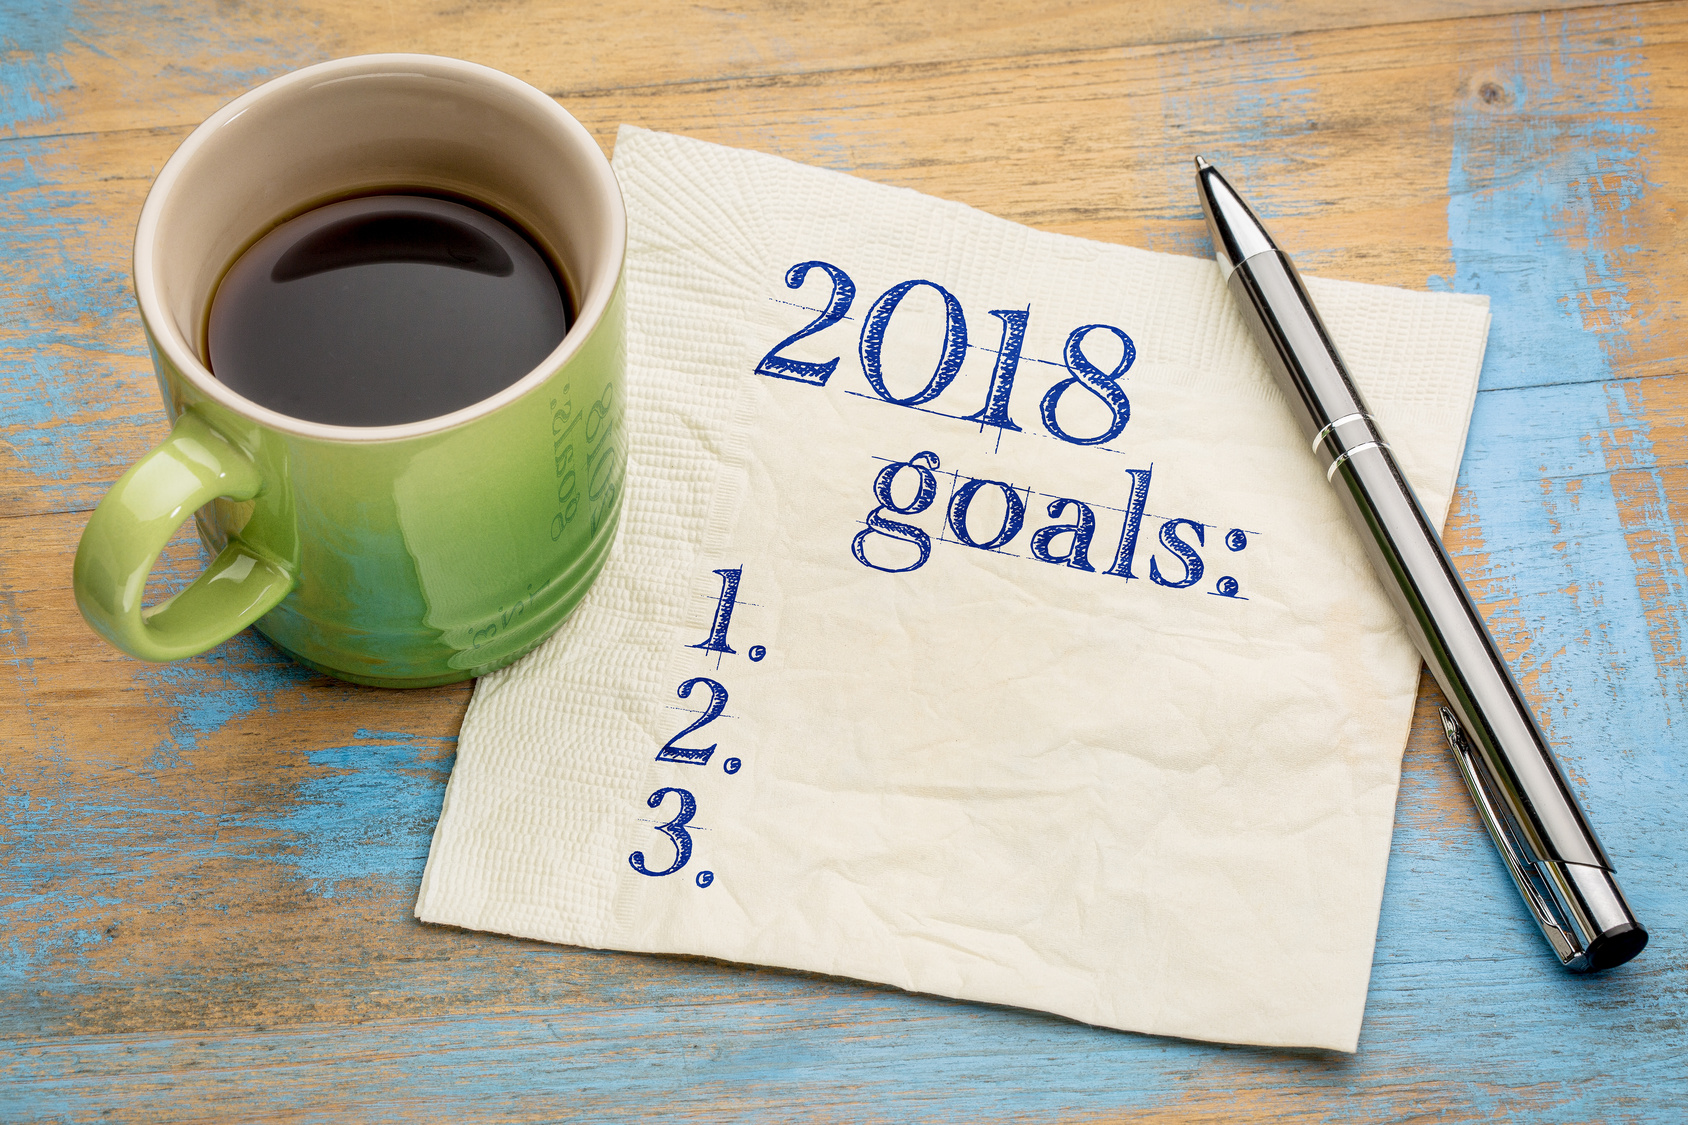 Fotolia 2018 year goals list on napkin